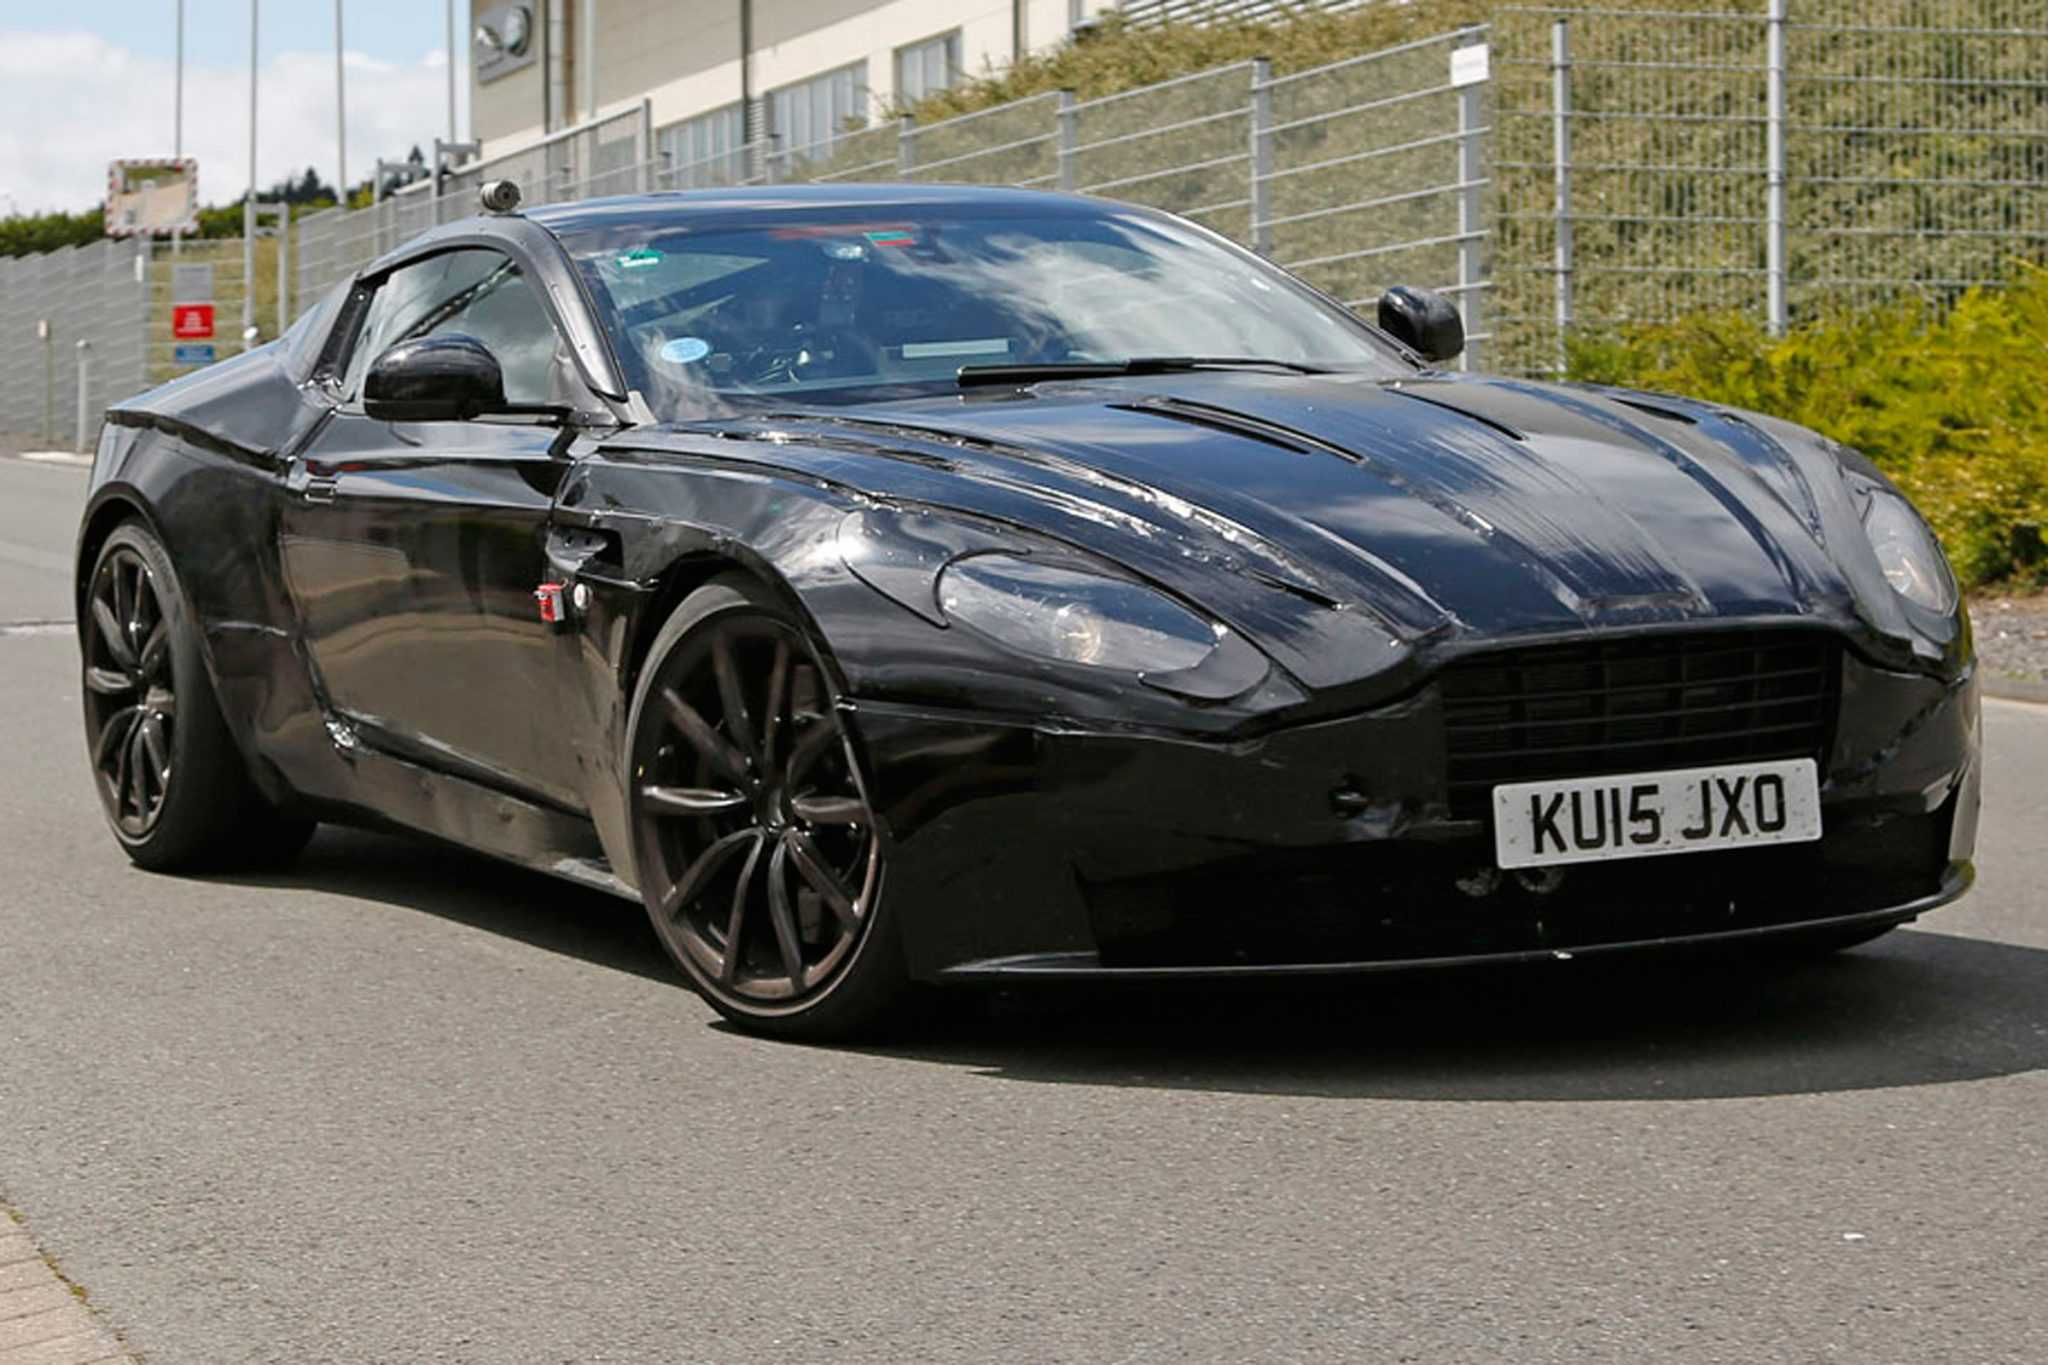 Aston martin db11 set to succeed db9 the first in an